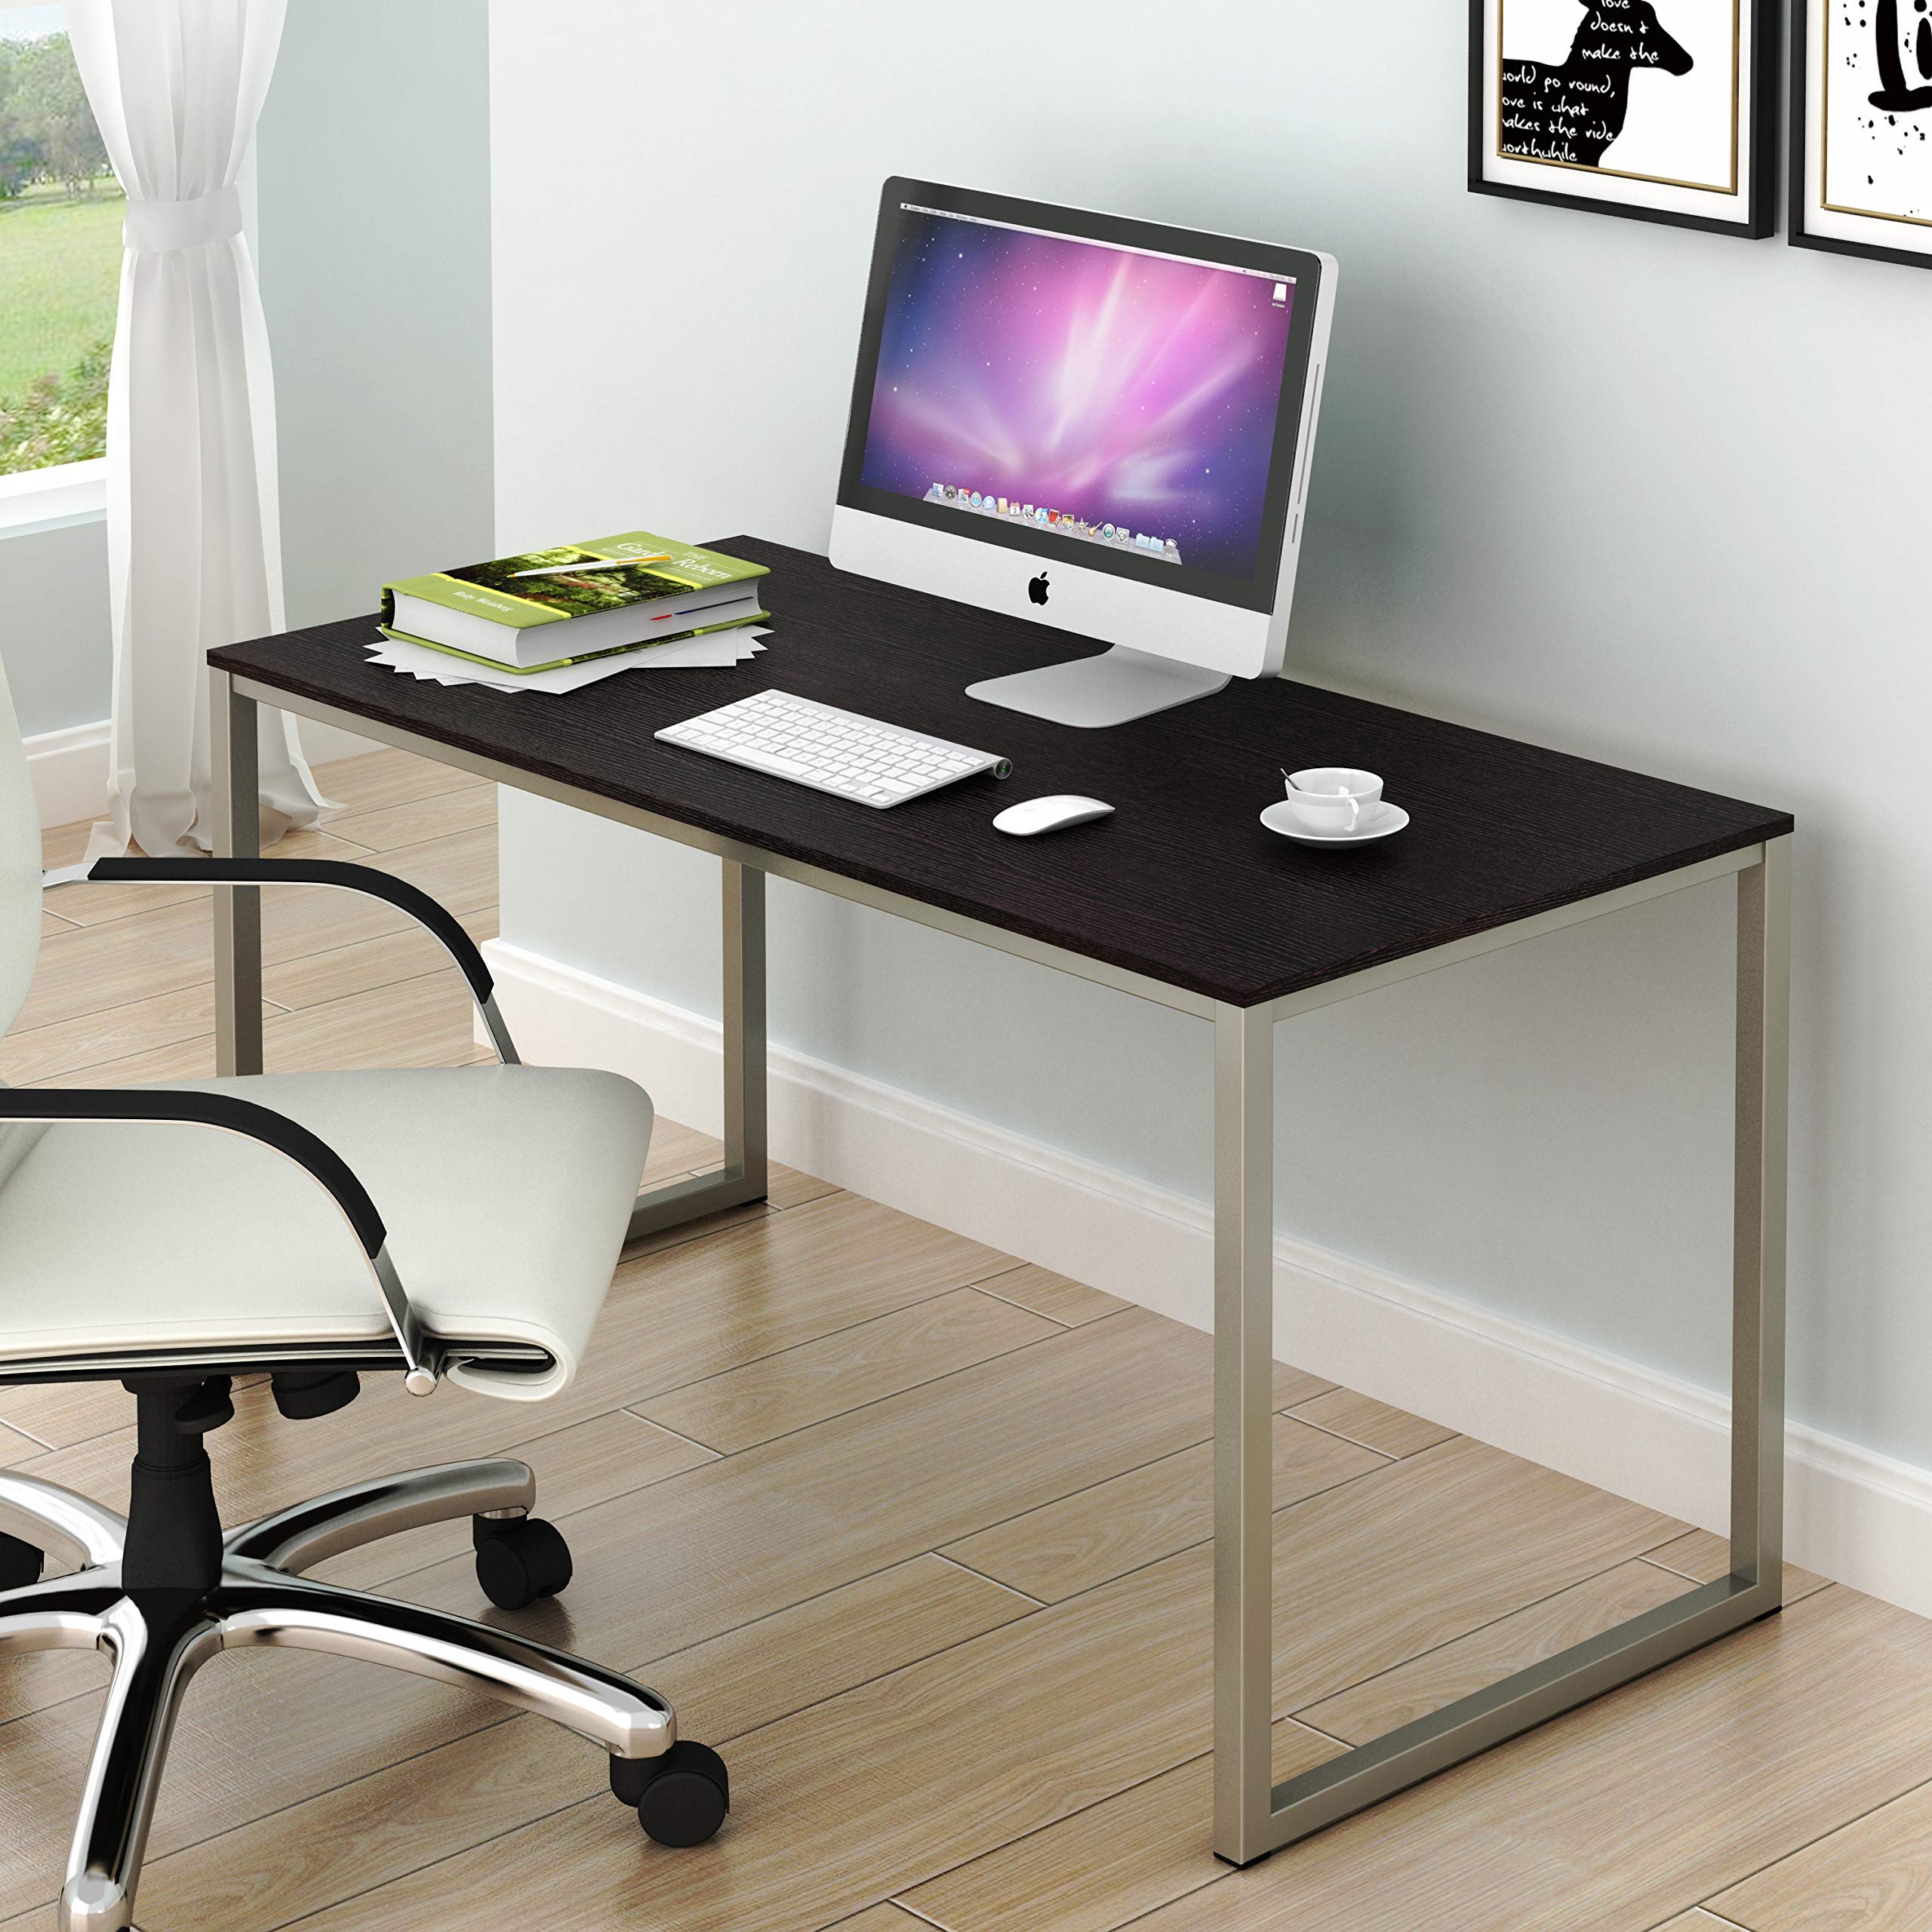 SHW Home Office 48-Inch Computer Desk, Silver/Espresso by SHW